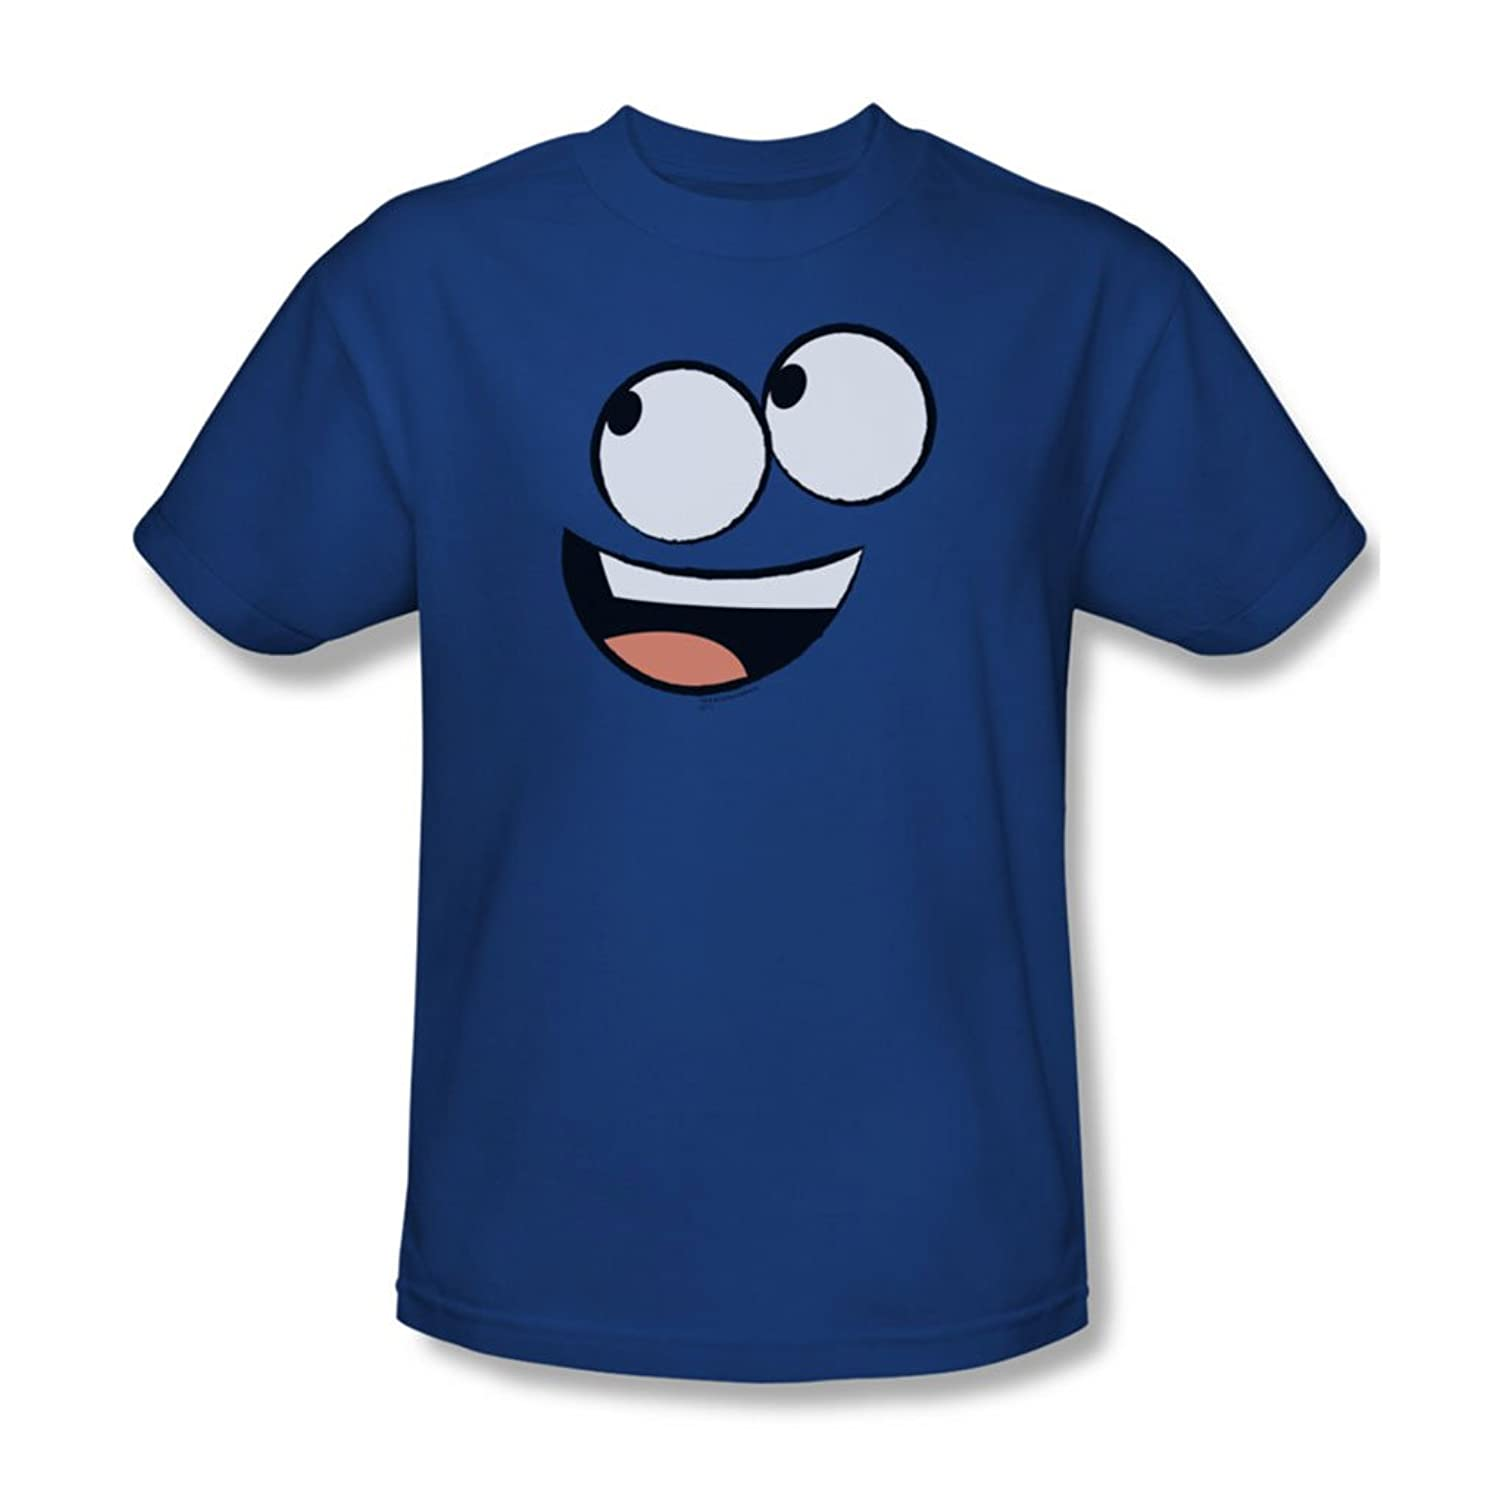 Foster'S - Mens Blue Face T-Shirt In Royal